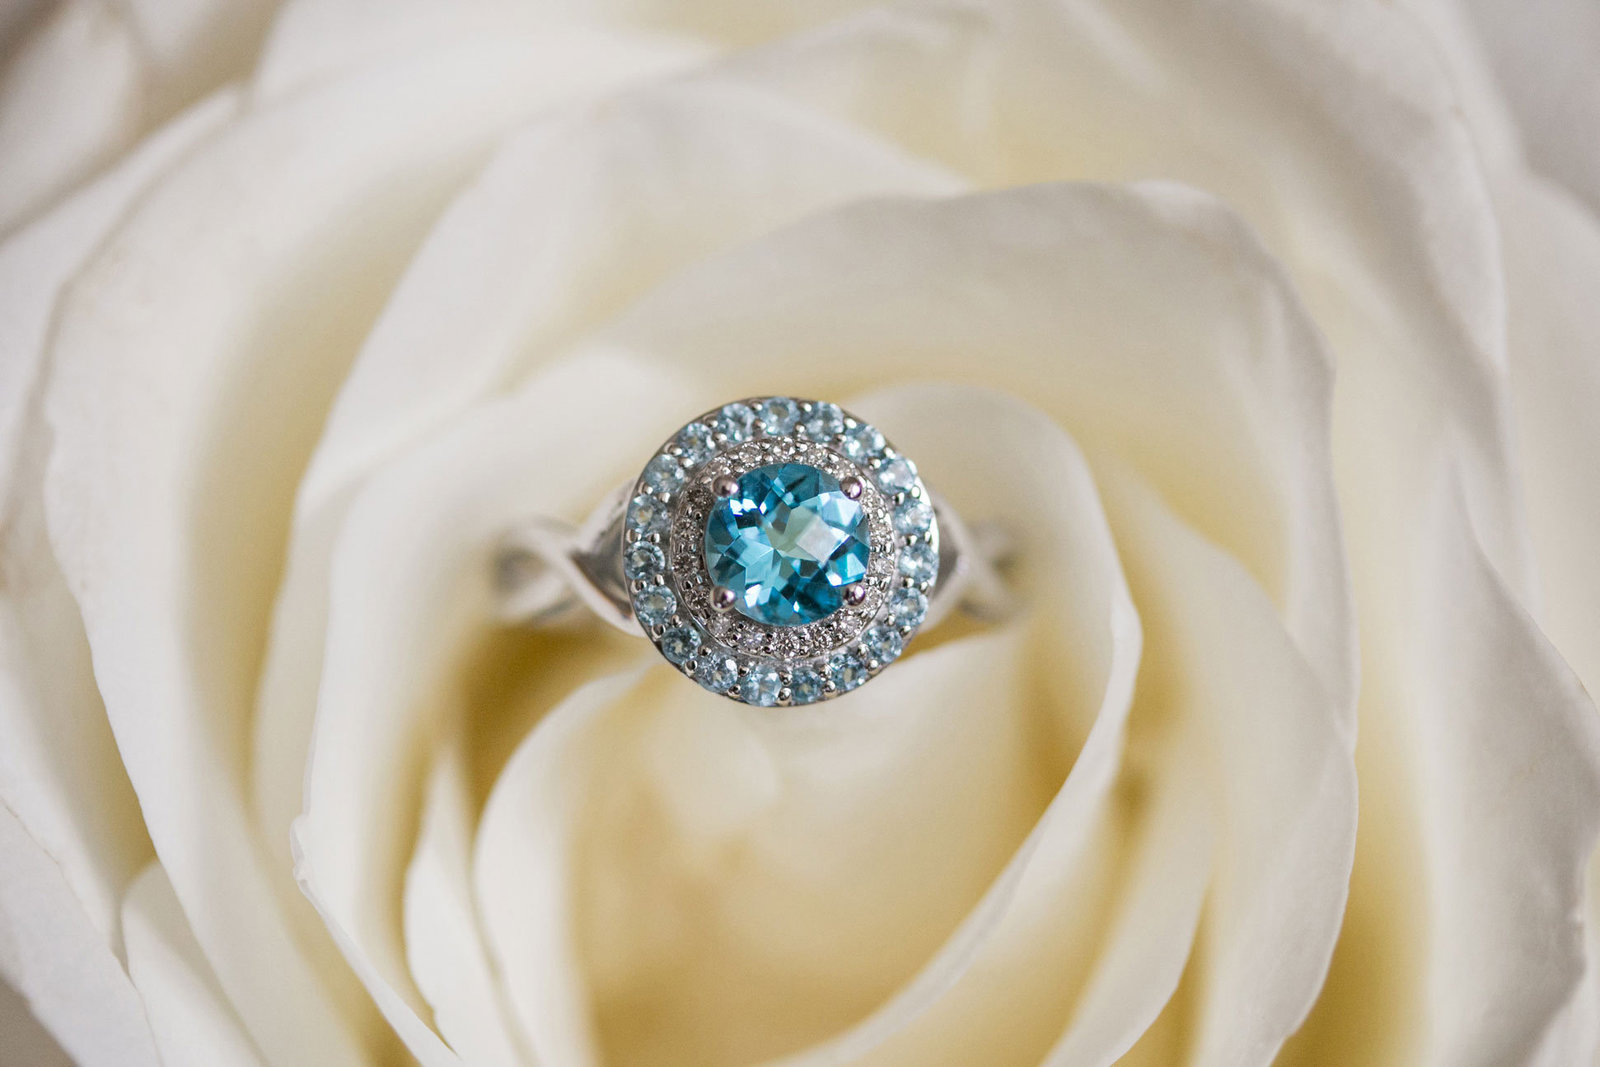 chicago-product-photography-featherlite-studios-blue-topaz-ring-0581